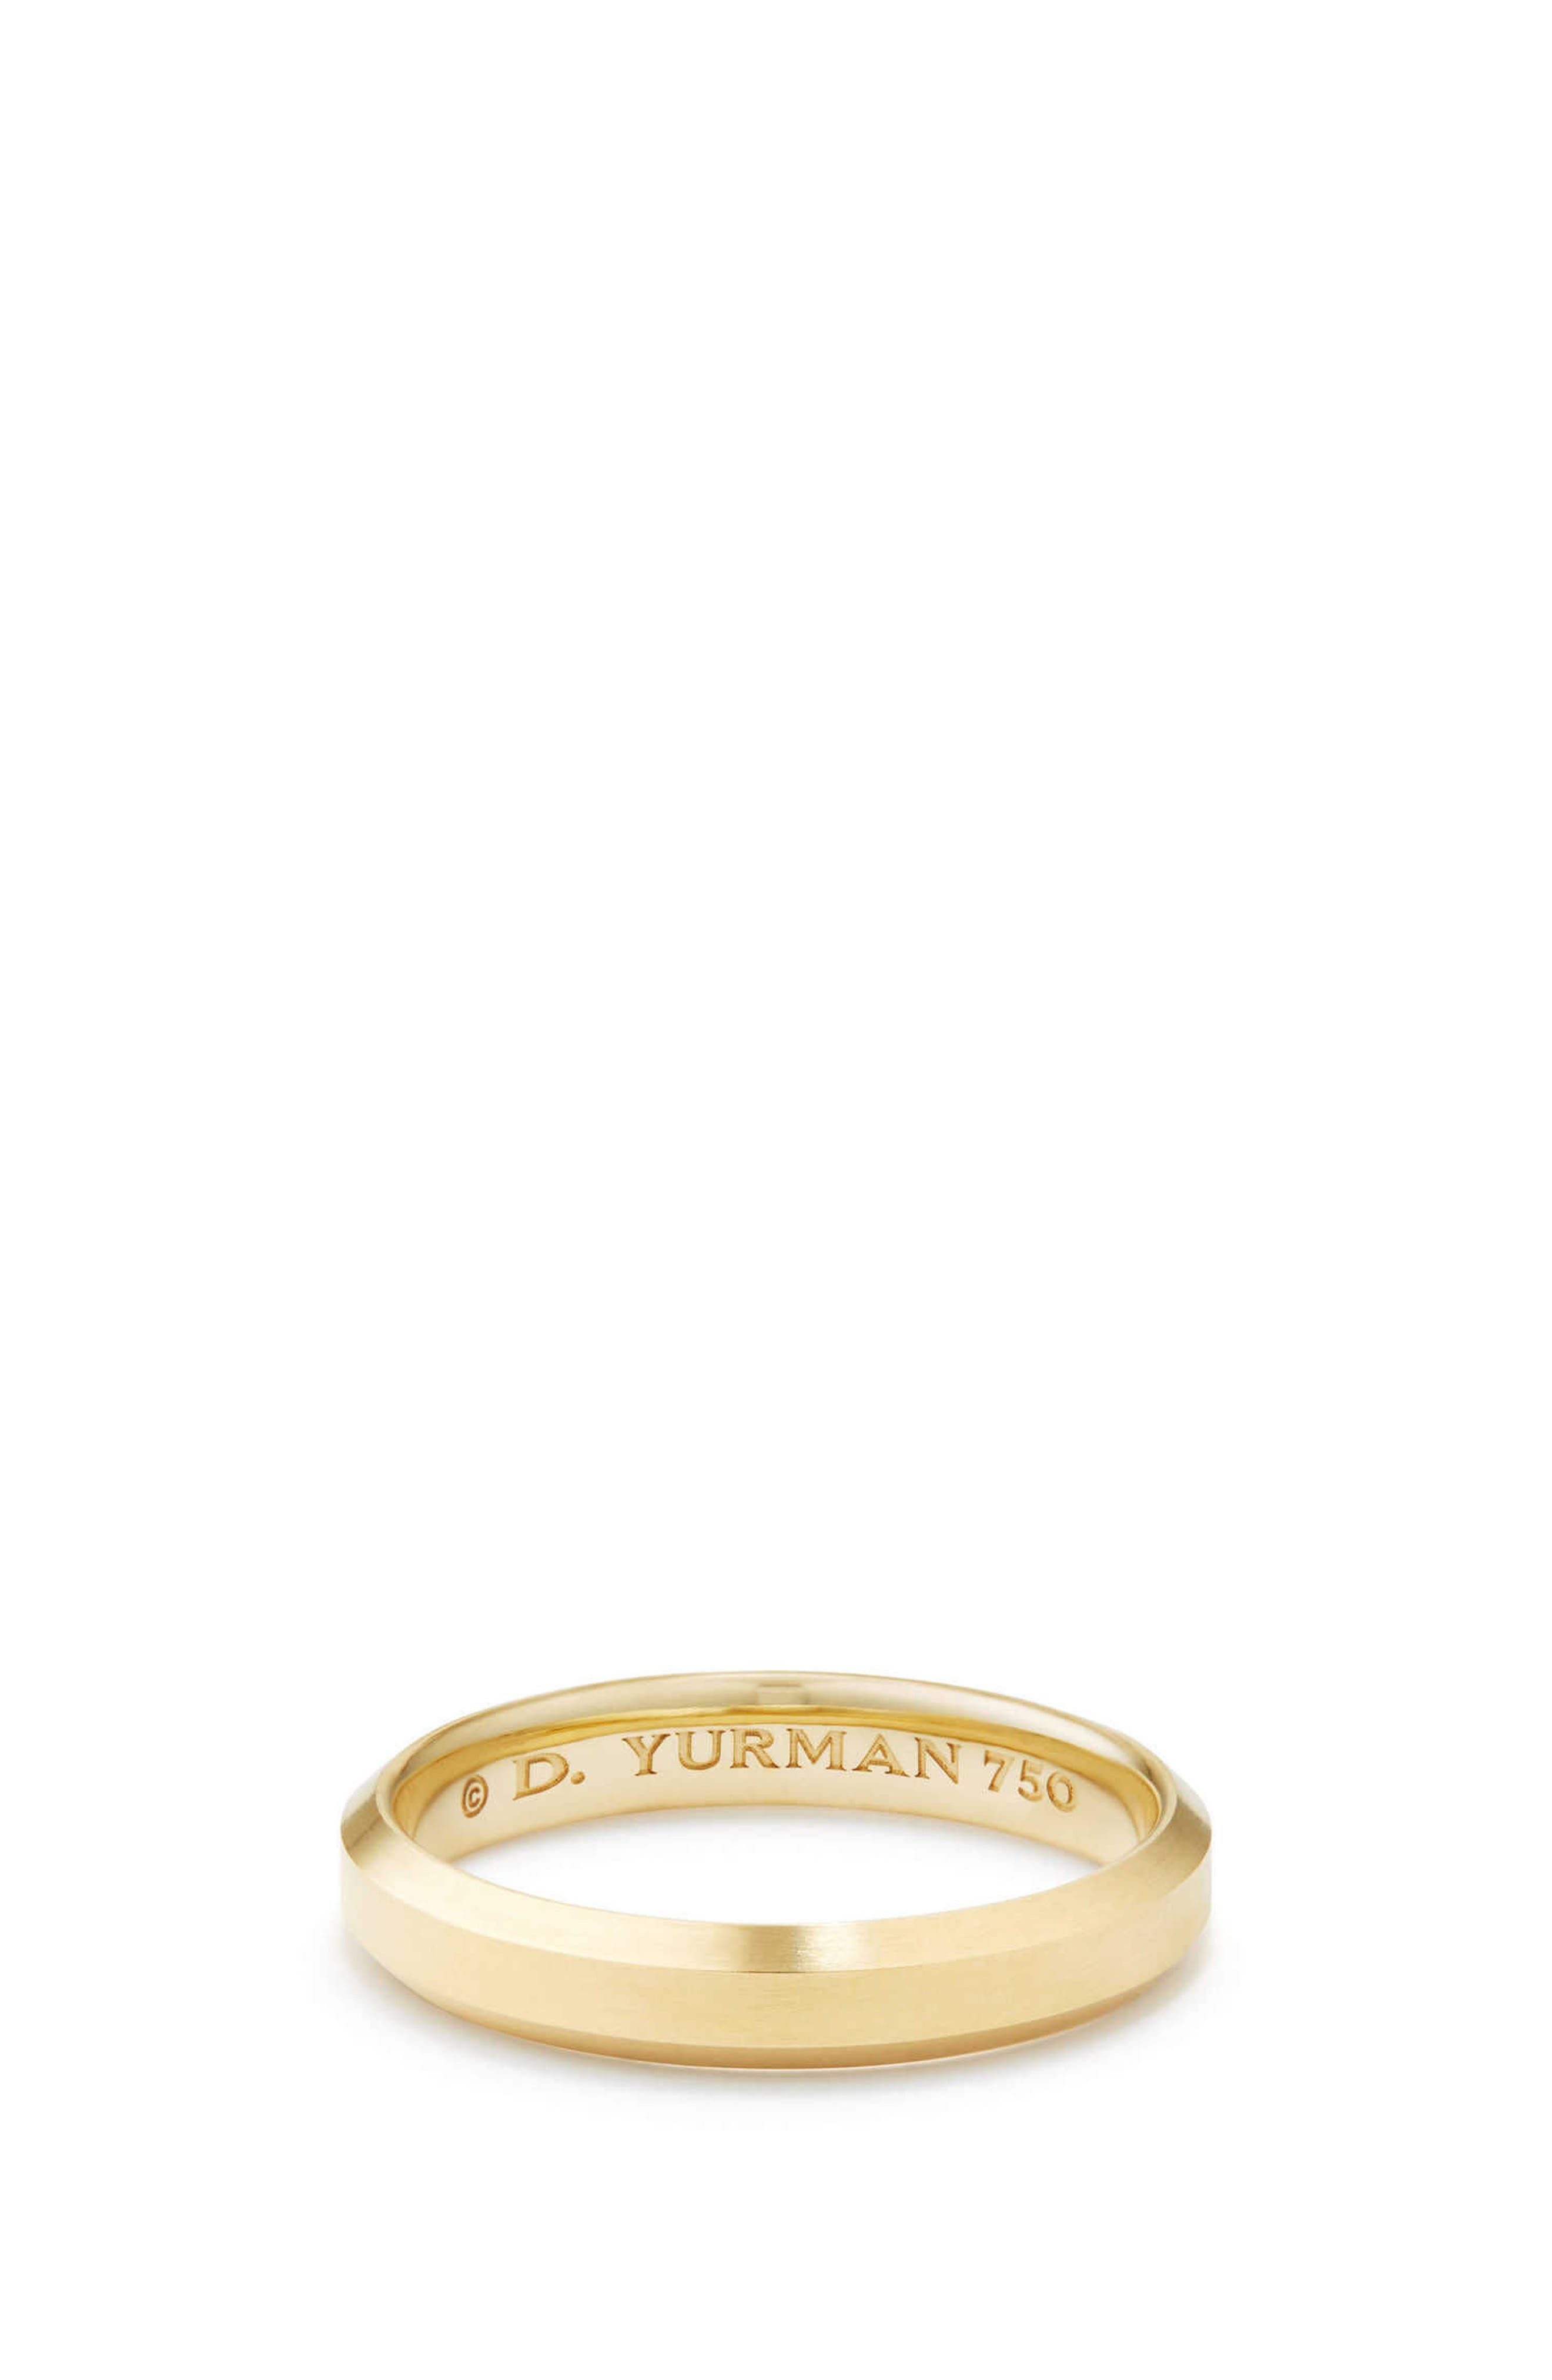 Streamline Band Ring in 18K Gold,                             Main thumbnail 1, color,                             GOLD